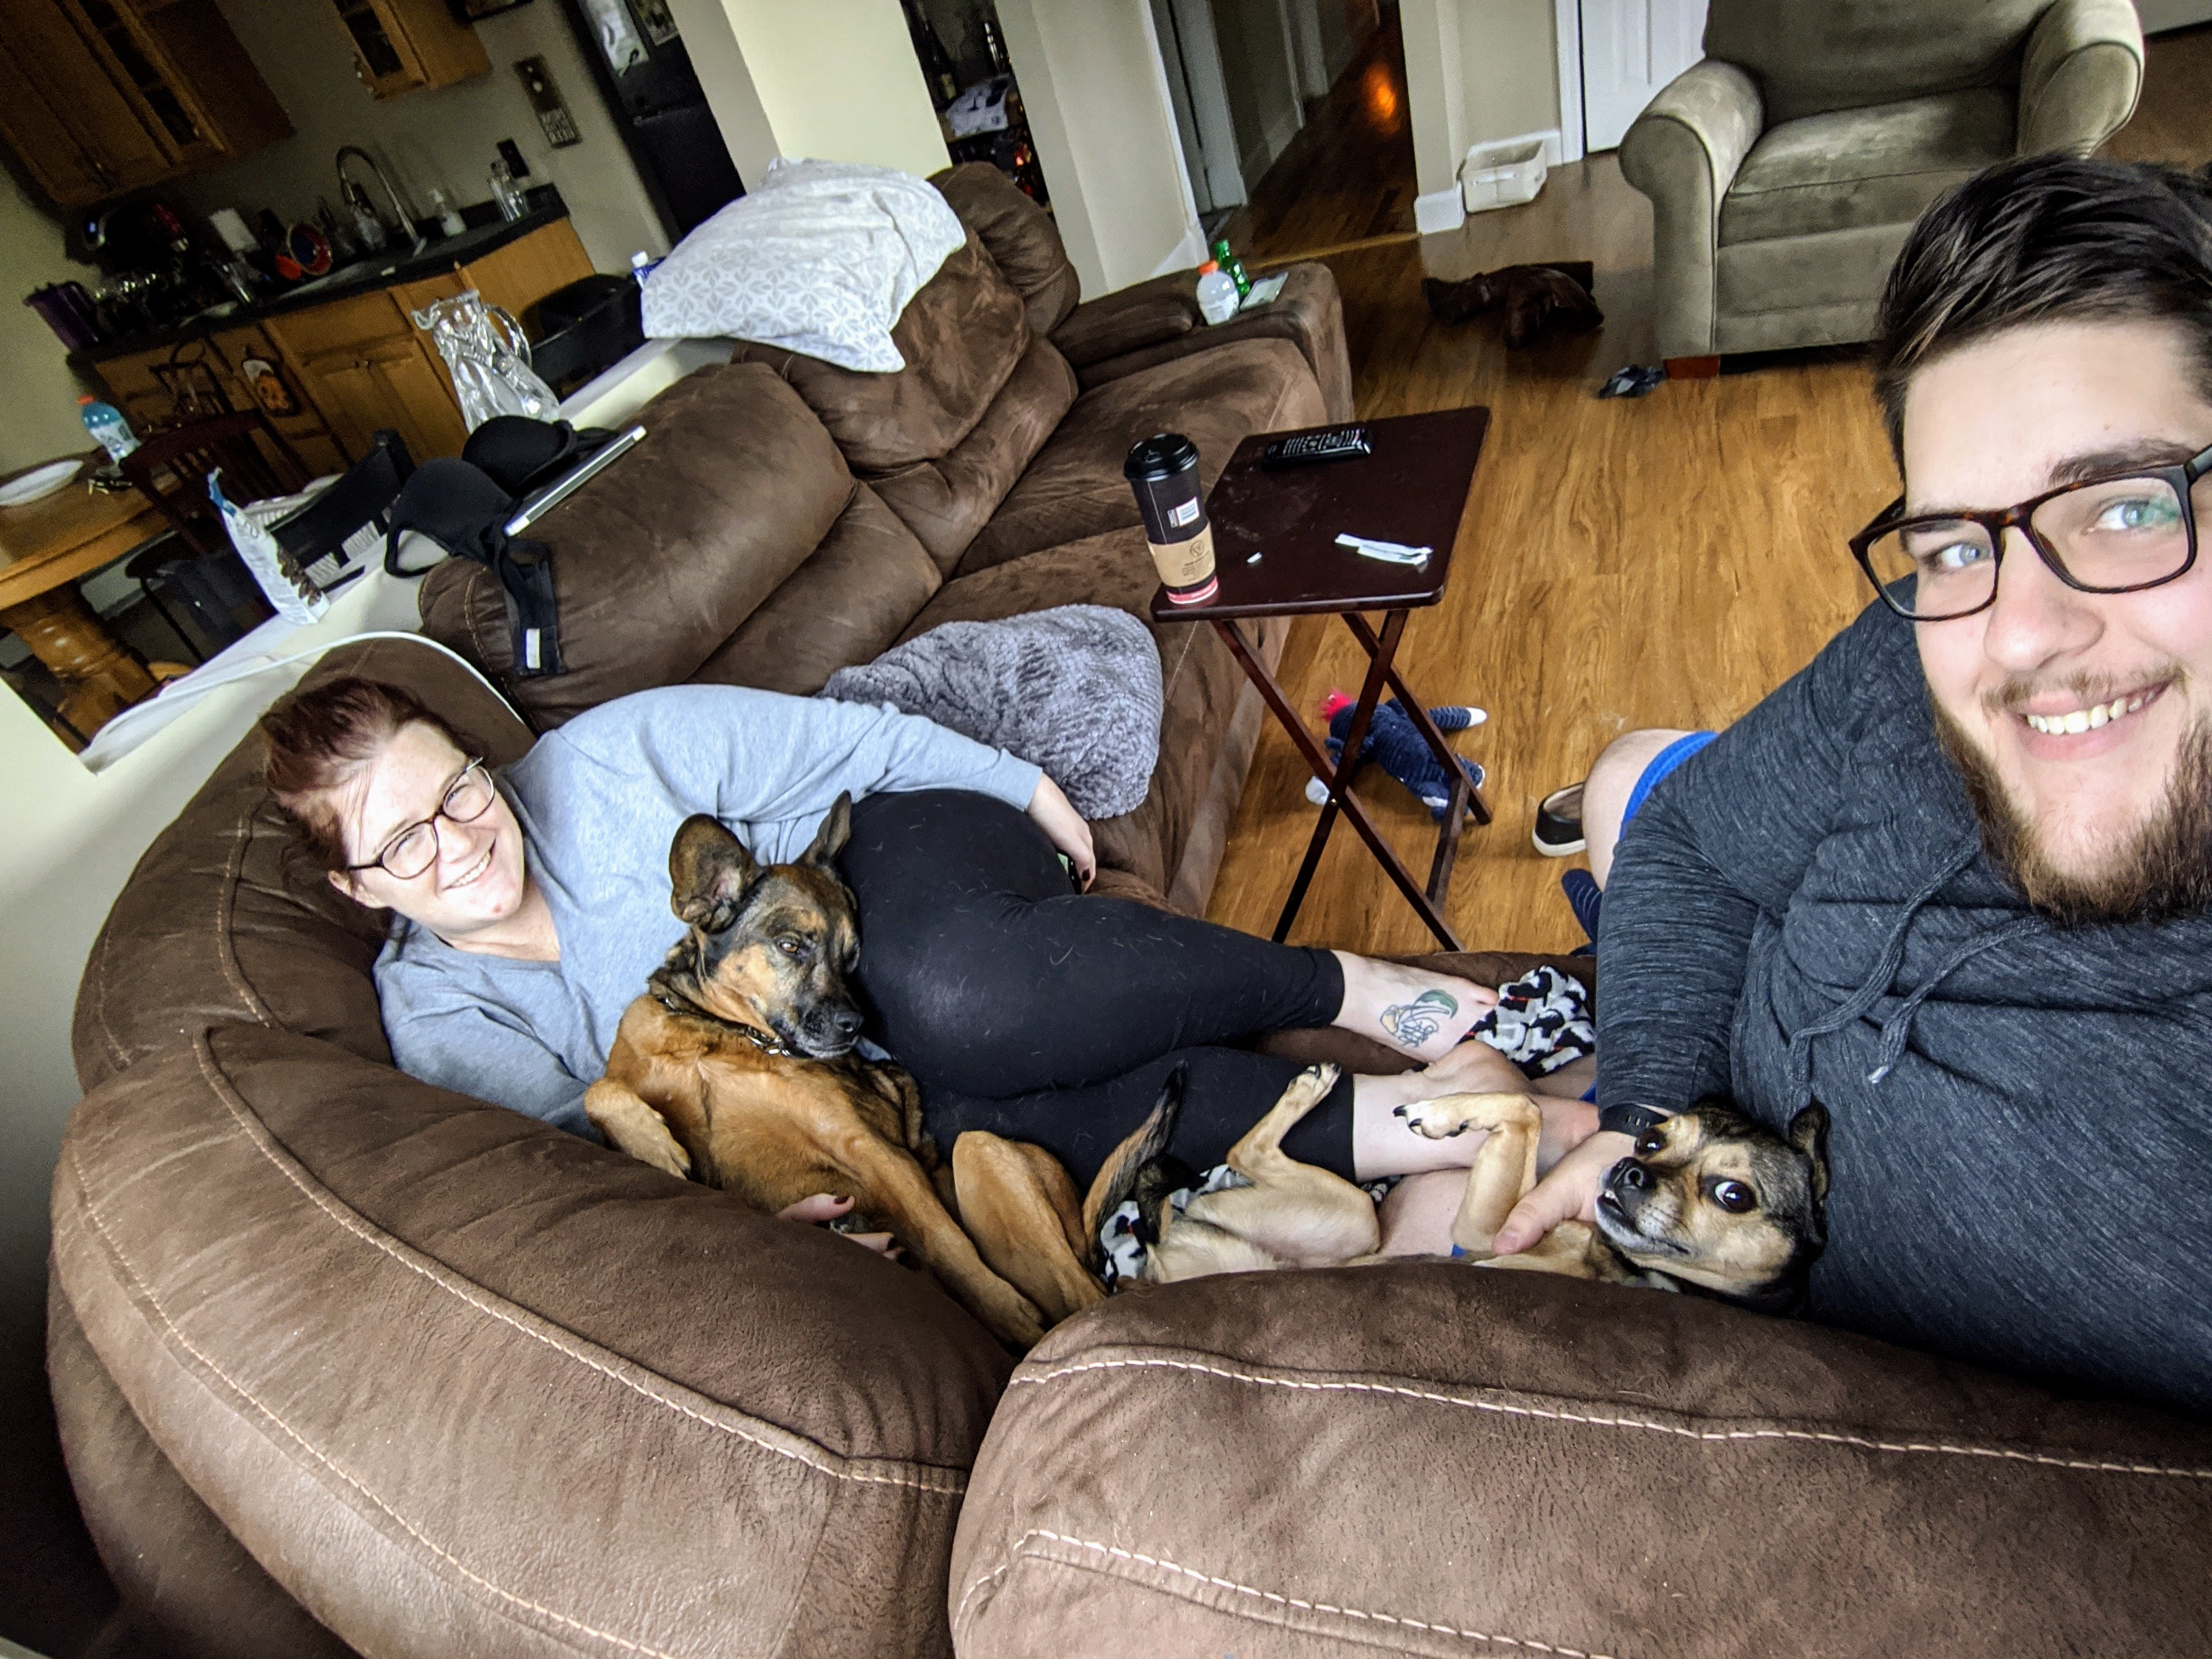 Megan and Ryan on a couch with their dogs, Maggie and Charlie